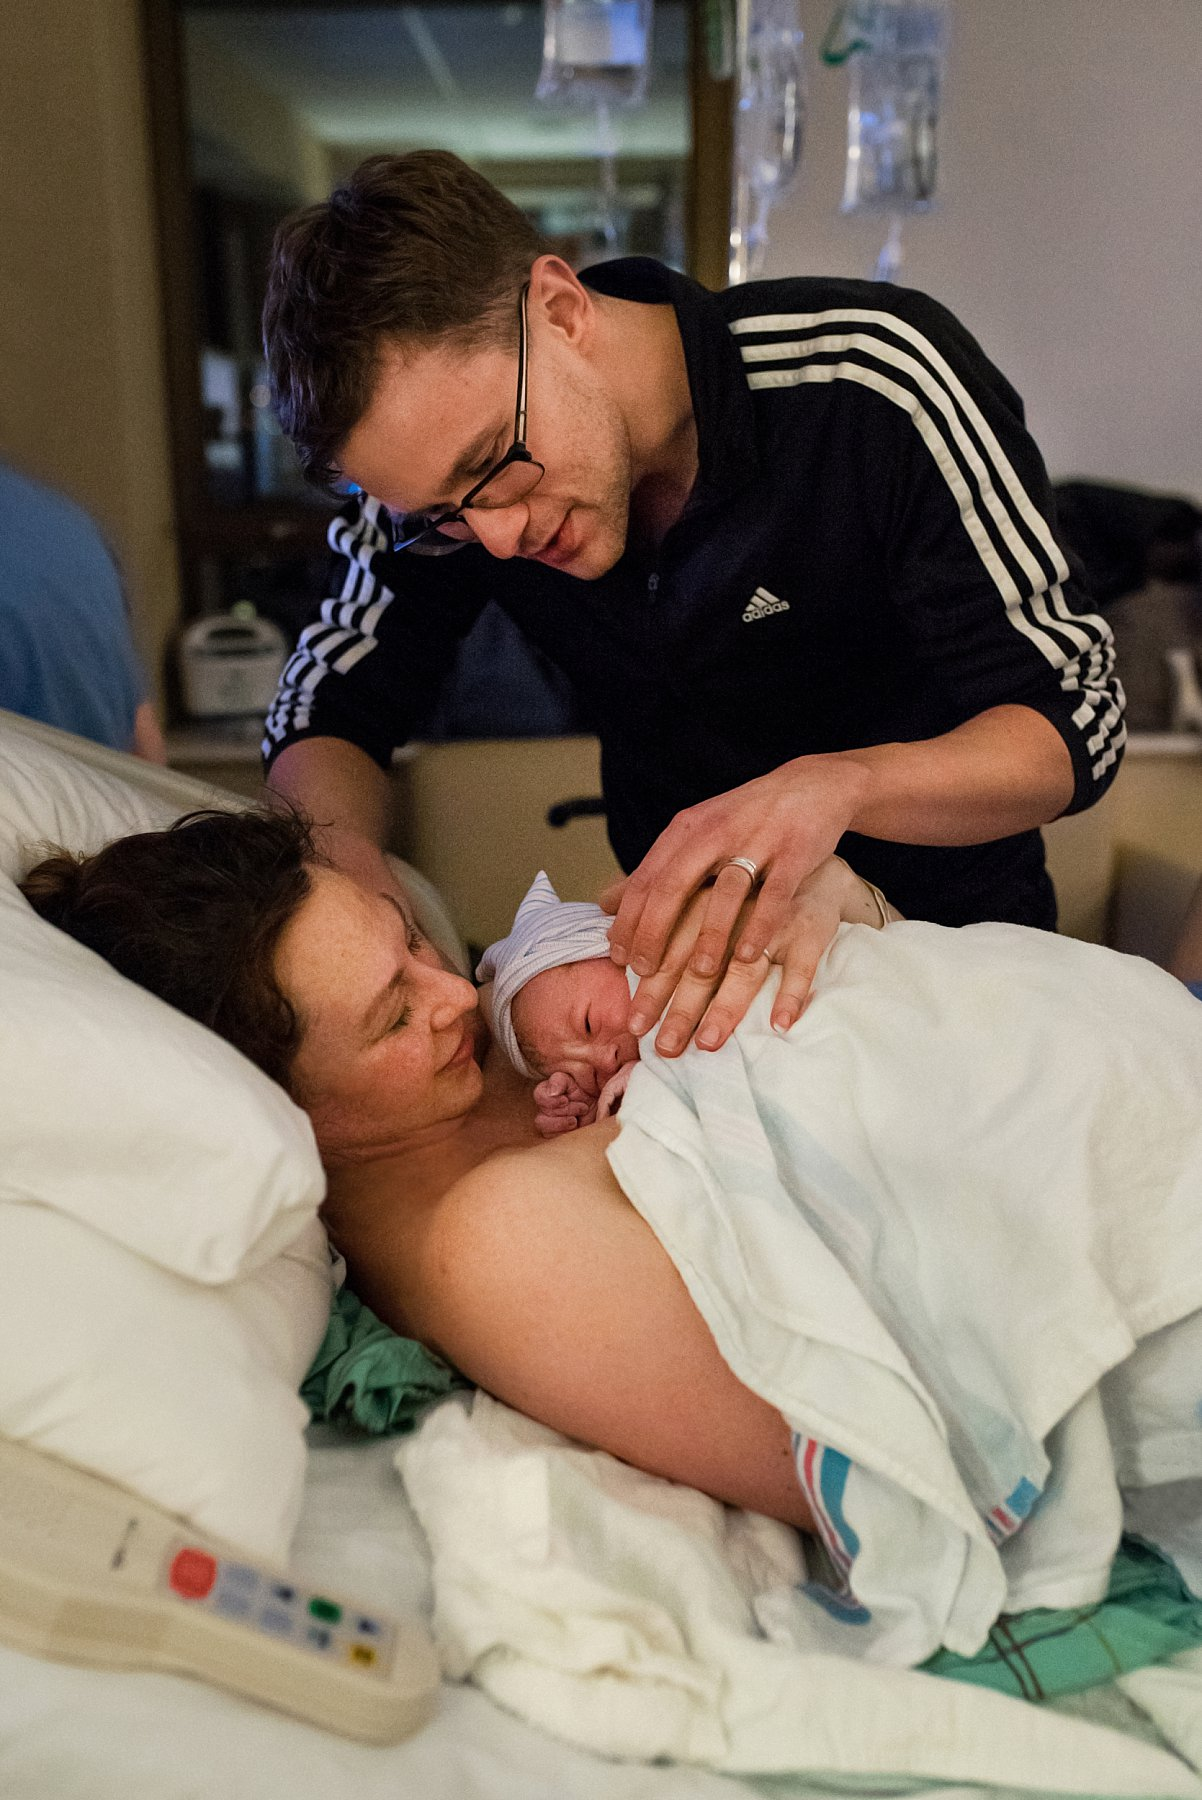 Birth photographer Connecticut. Father meeting newborn daughter for the first time after delivery.